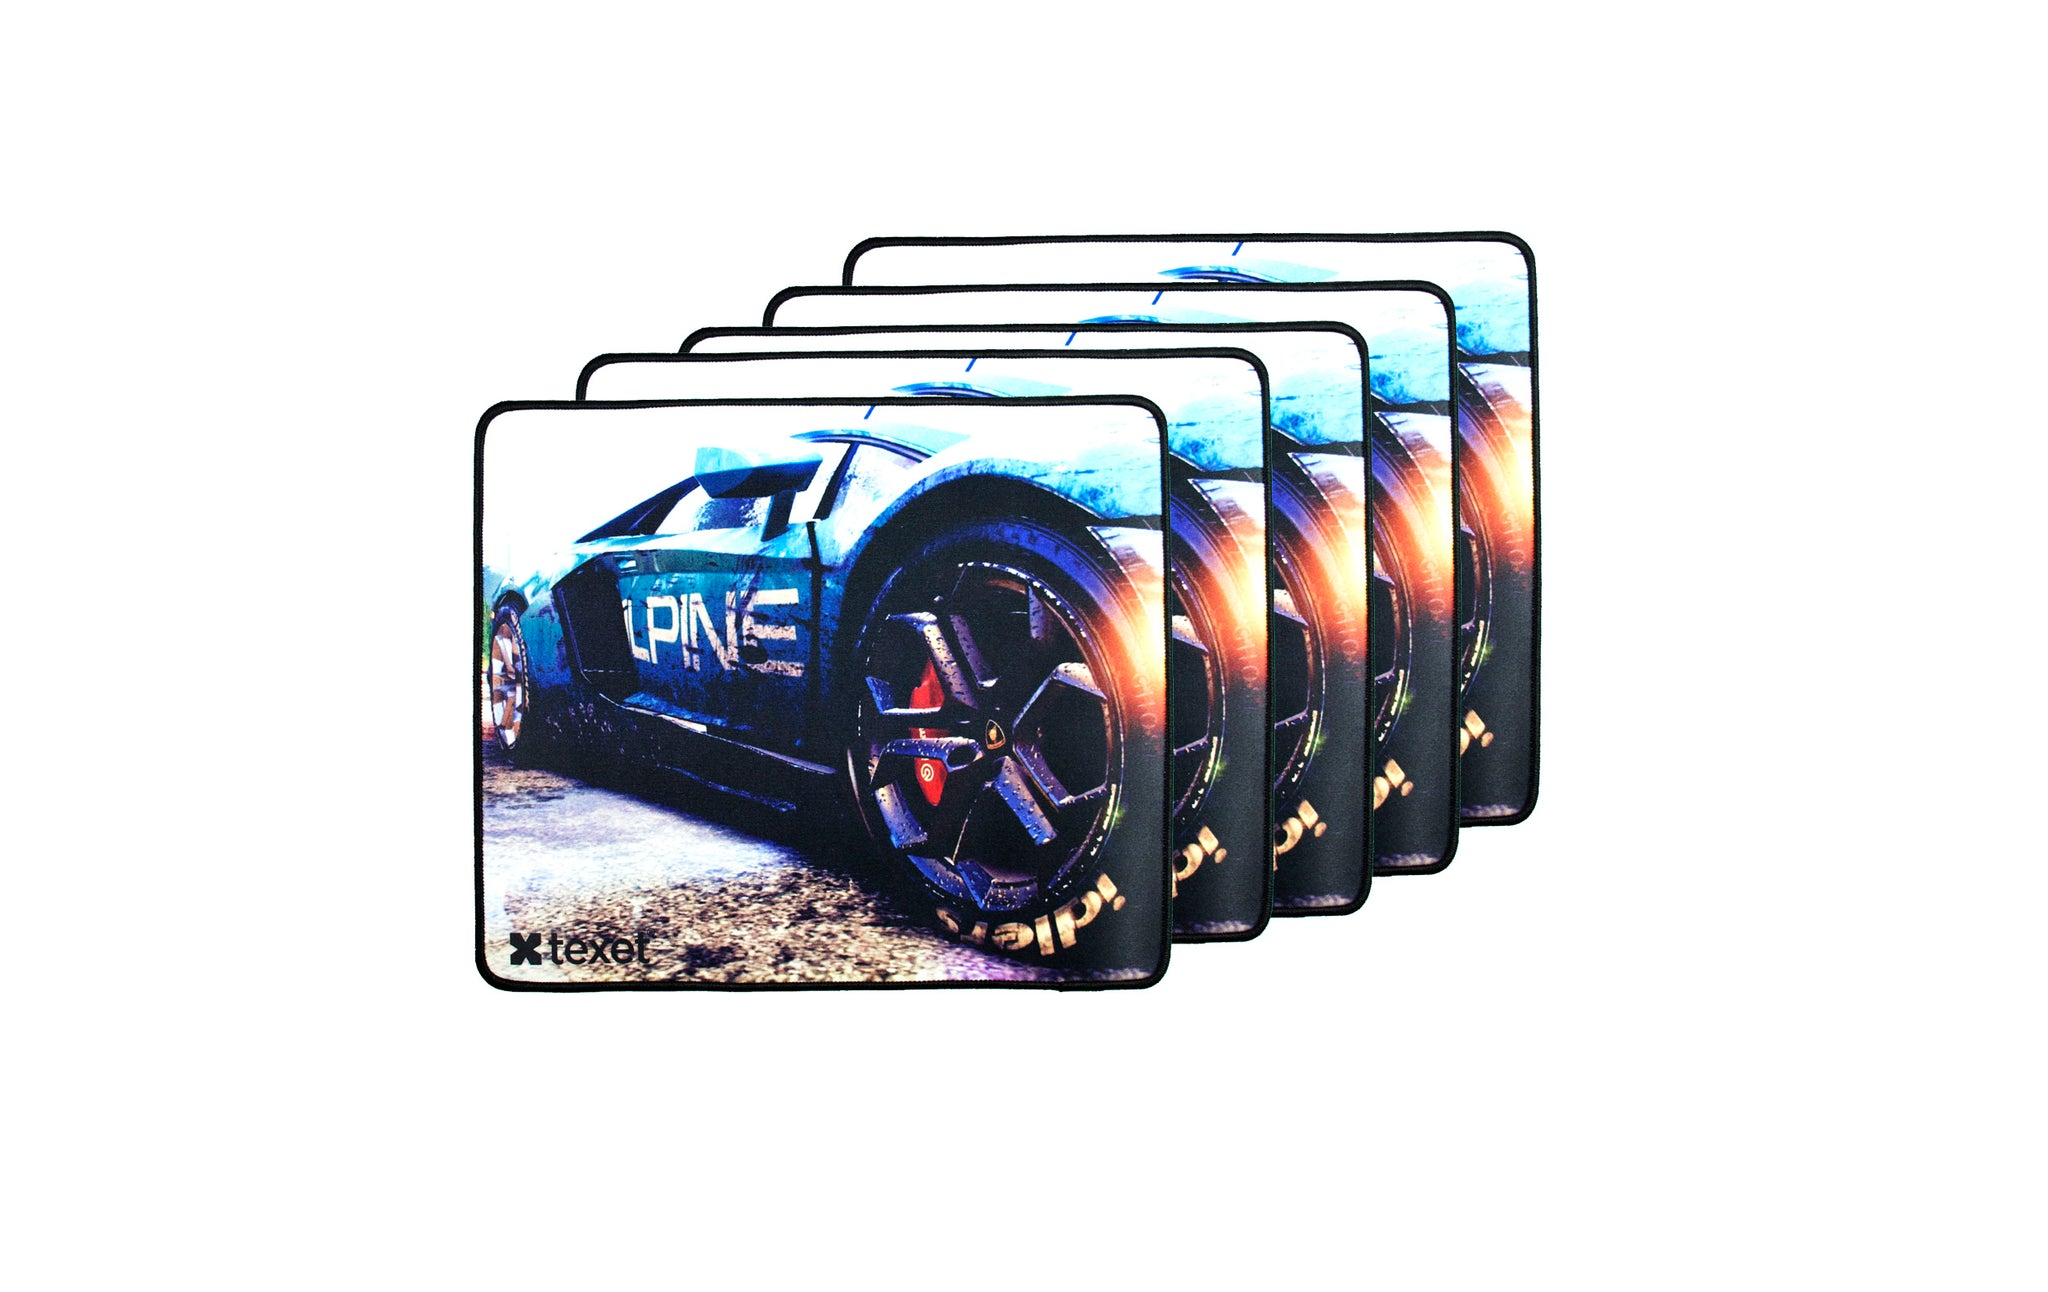 TEXET Premium Gaming Mousepad (33 cm x 28 cm) - Racing Series | Pack Of 5 | Anti-Slip rubber base | Precise Friction Technology